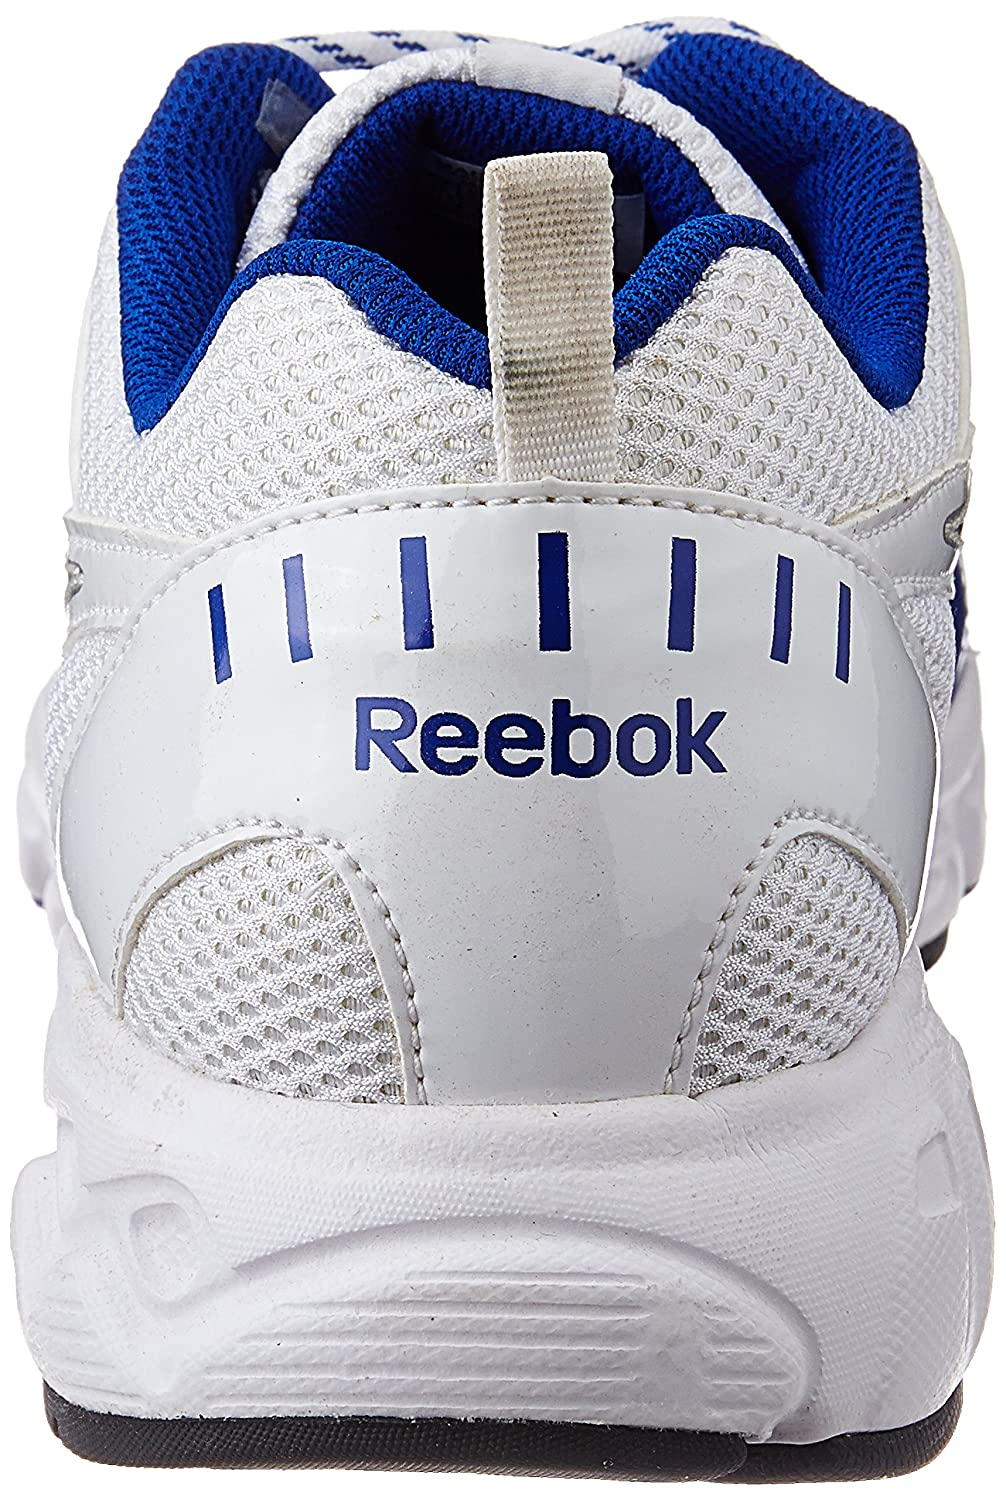 819b79b66c3 Reebok Men s Active Sport II LP White and Blue Running Shoes - 6 UK India  (39 EU)(7 US)  Buy Online at Low Prices in India - Amazon.in